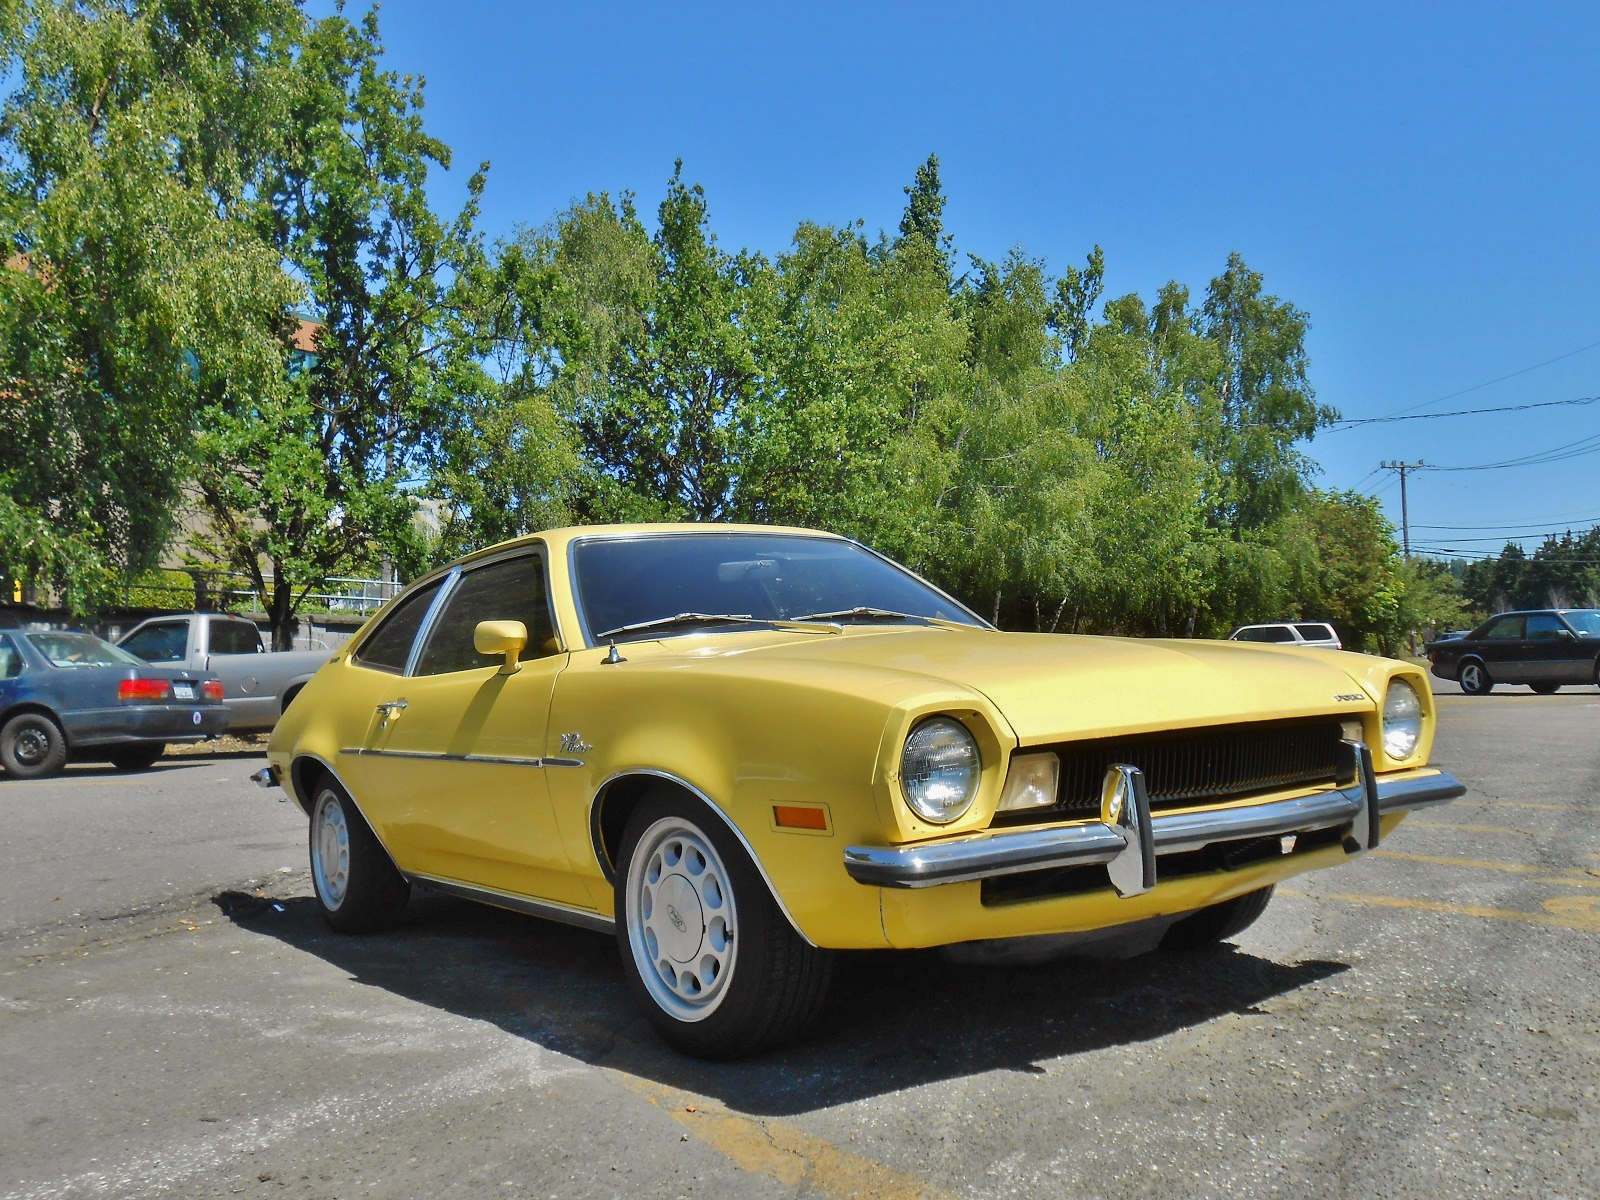 Vette | five - a blog